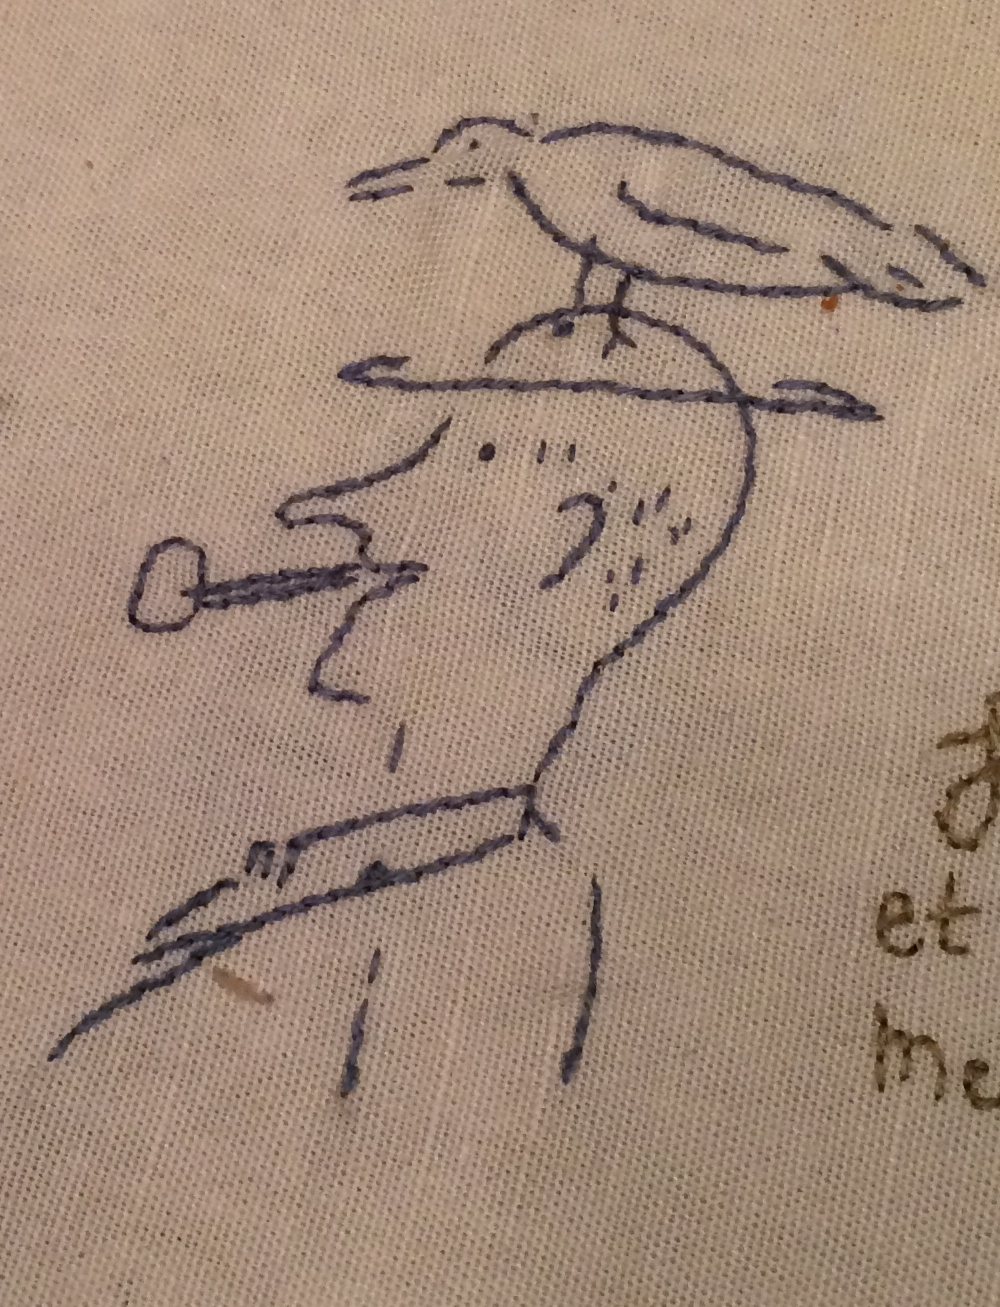 While my dad mostly drew on the beach, he drew this on my sister-in-law's famous tablecloth filled with embroidered signatures of guests.